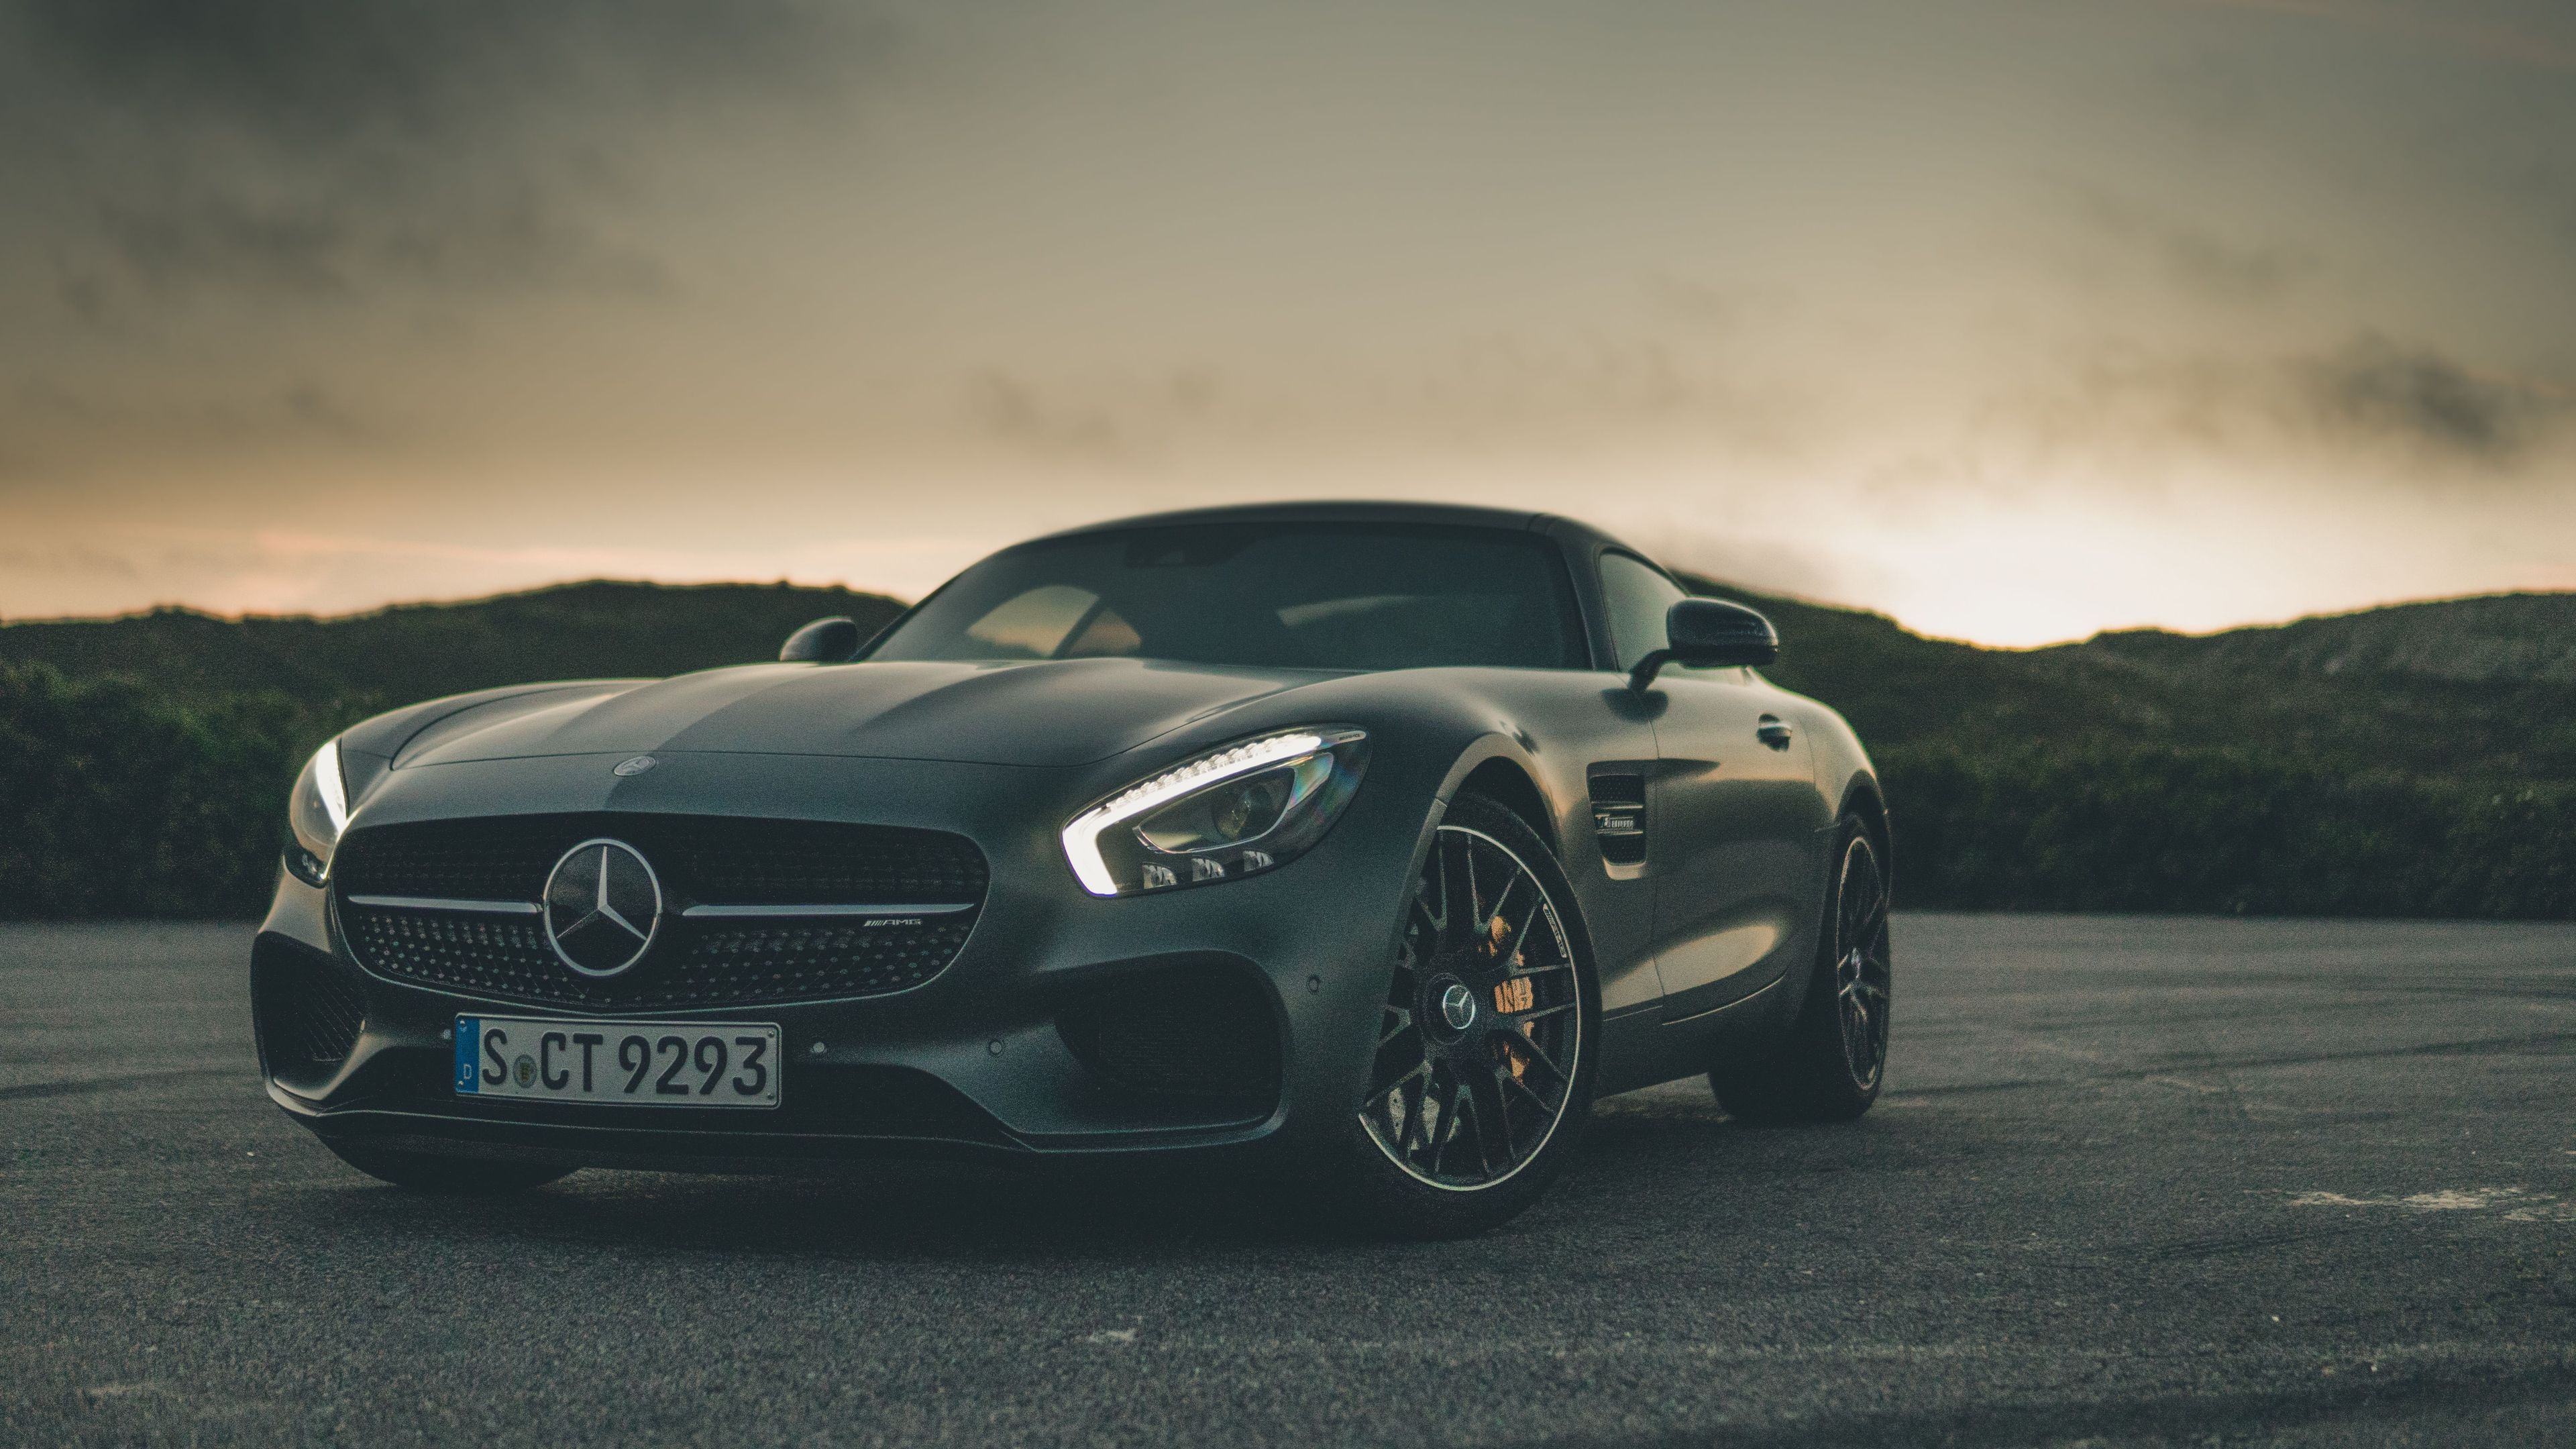 Black Mercedes Benz Amg Gt 4k Mercedes Wallpapers Mercedes